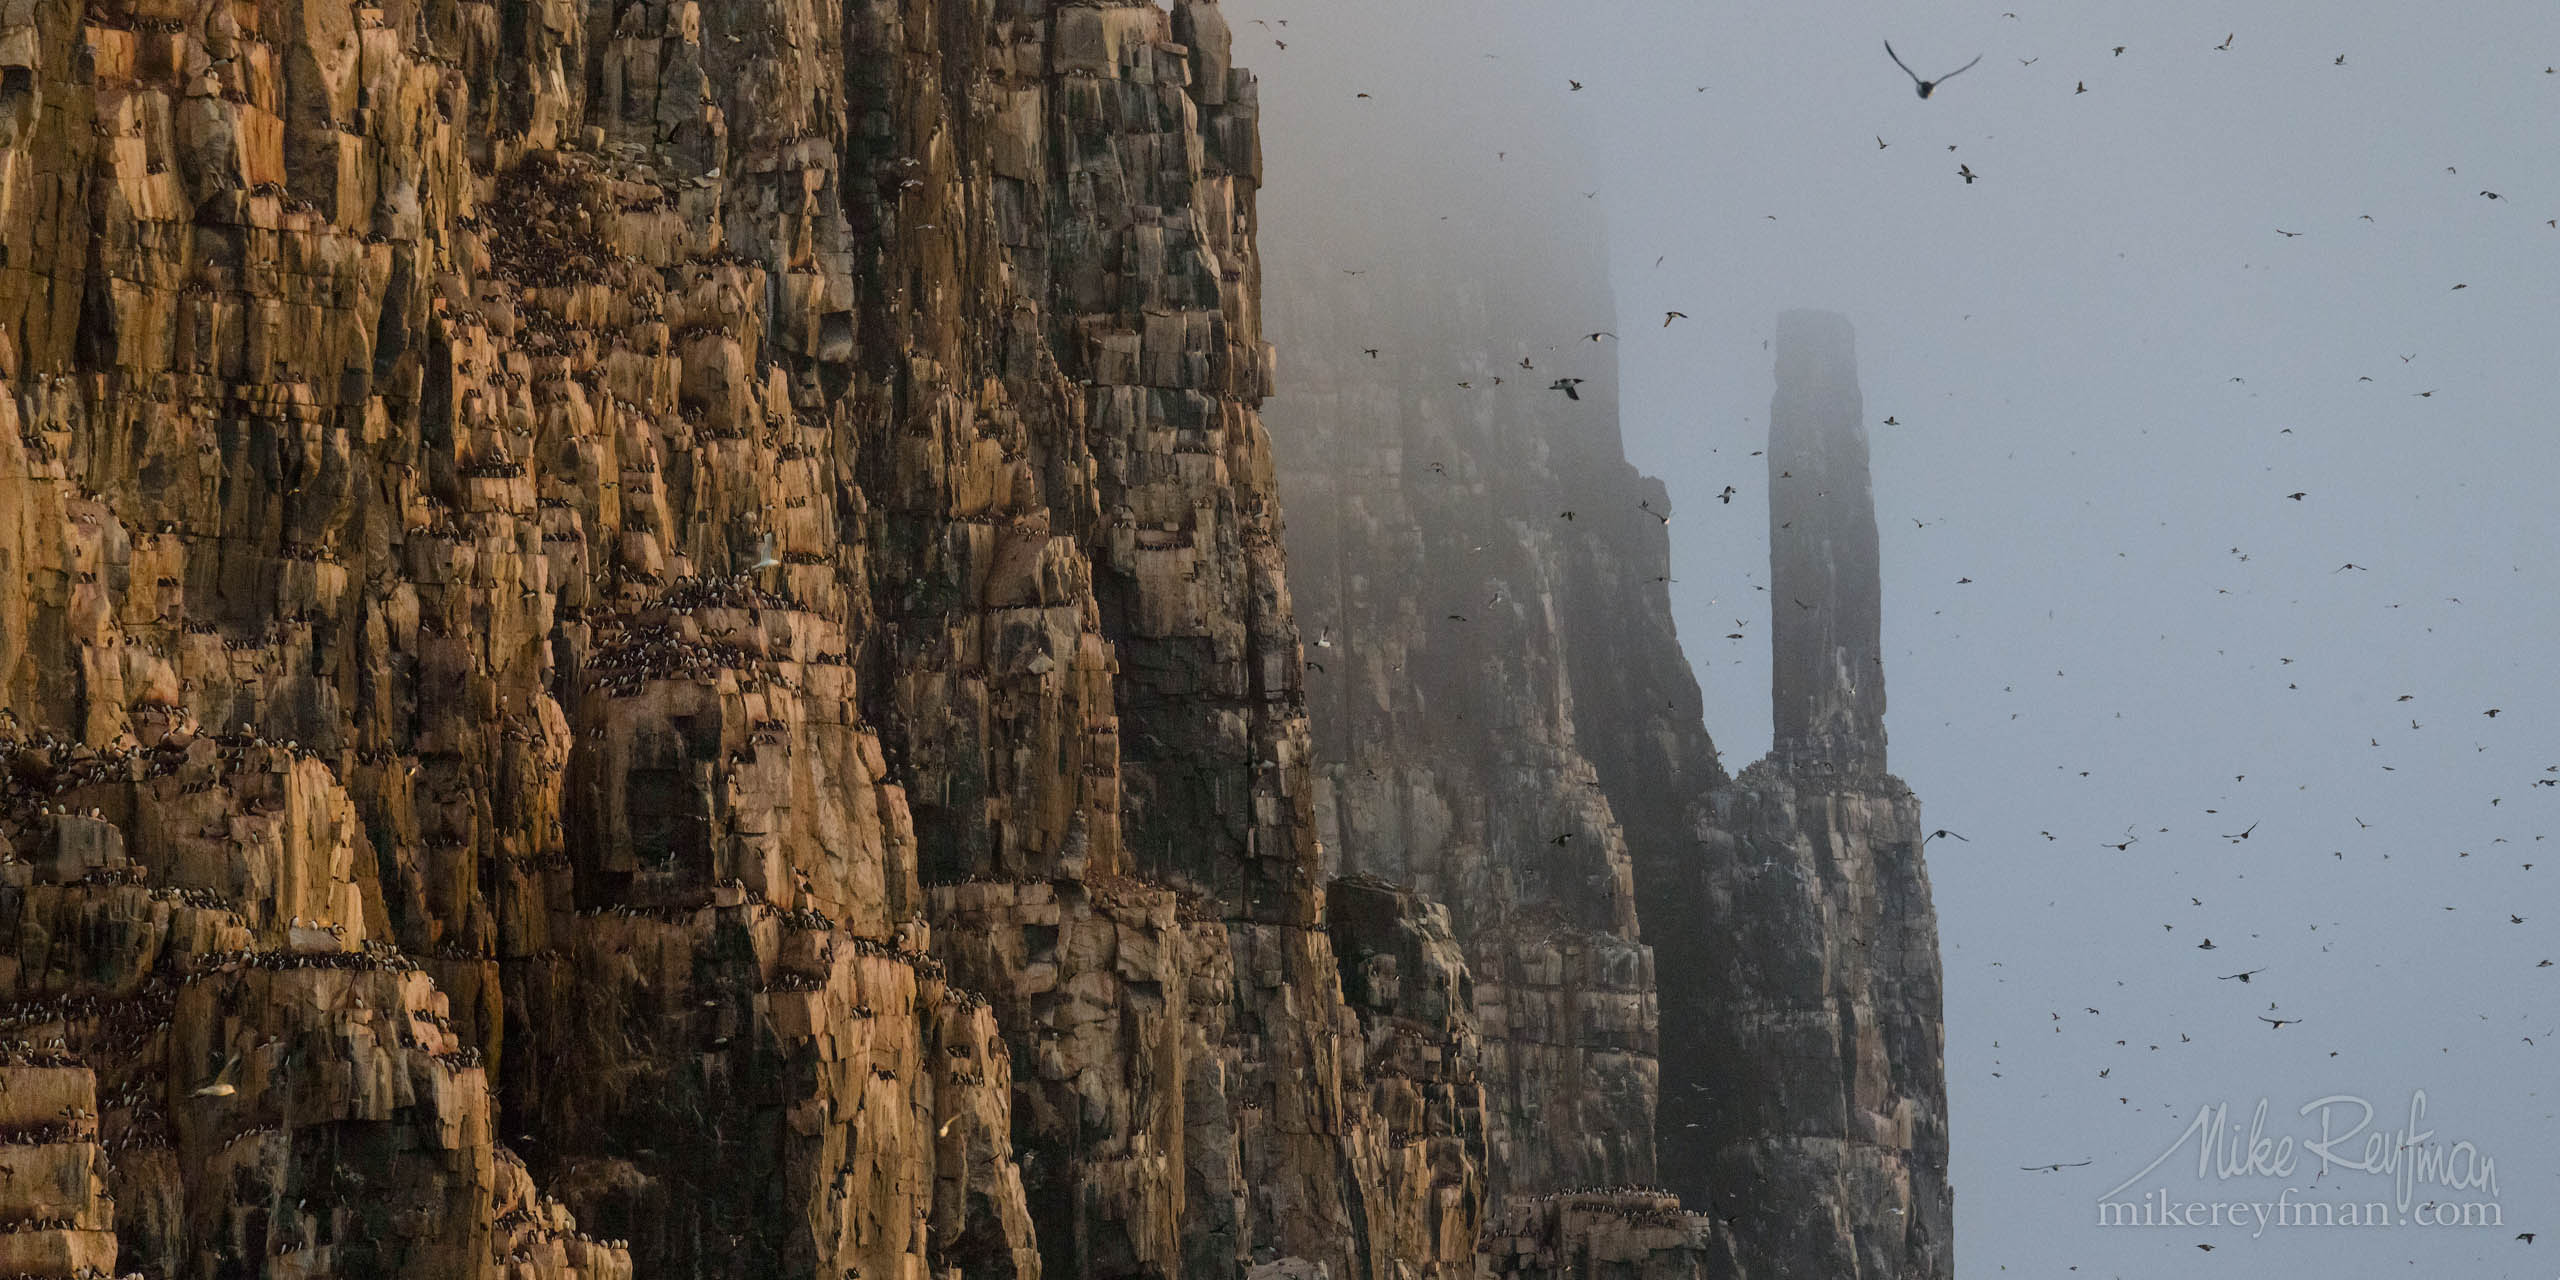 Tens of thousands of Brünnich's Guillemots nest on dolerite towers of Alkefjellet - The Bird Mountain. Hinlopenstretet, Spitsbergen, Svalbard P12-MRD8D3320 - Selected panoramic images with 2:1 aspect ratio - Mike Reyfman Photography